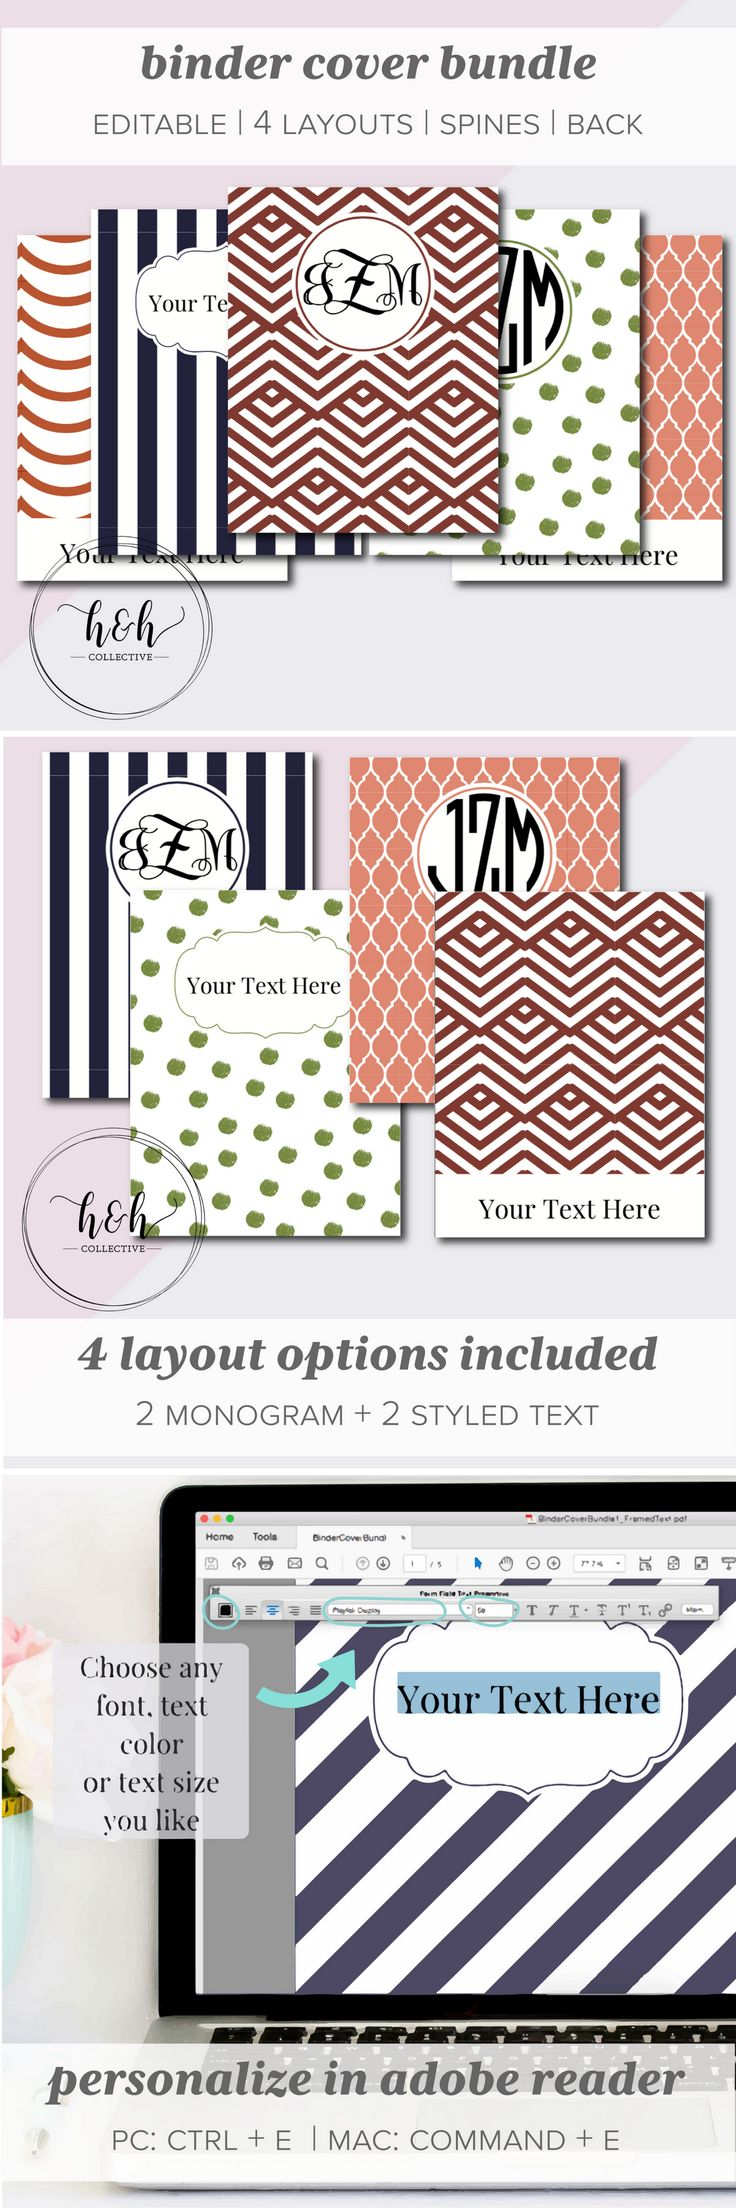 Who says binders have to be boring? Spice up your binders with these Editable and Printable Binder Covers - make custom binder covers that fit your style and personality!